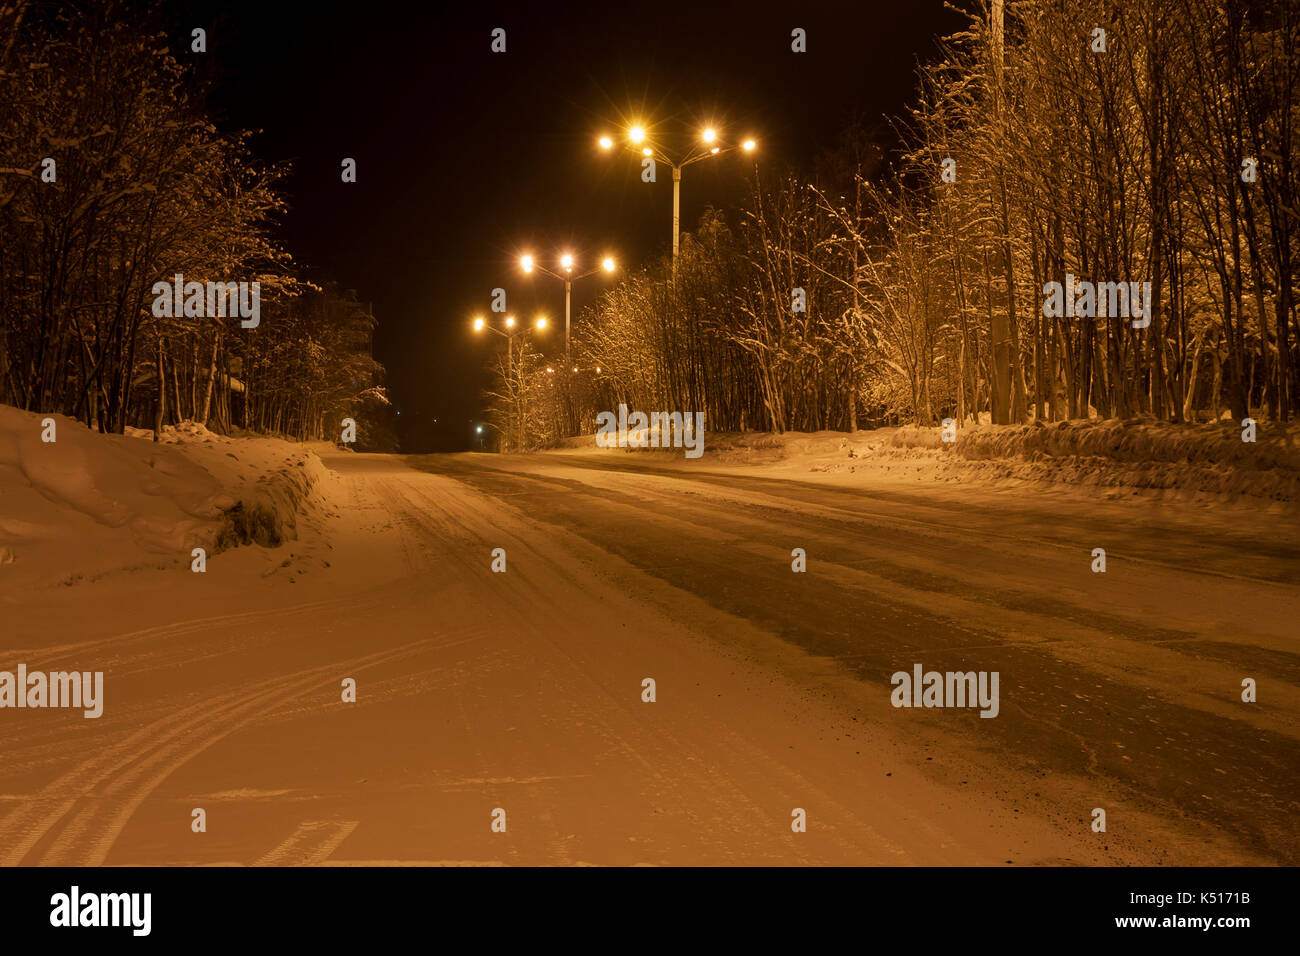 Winter road in the town of Apatity, Murmansk region, Russia - Stock Image